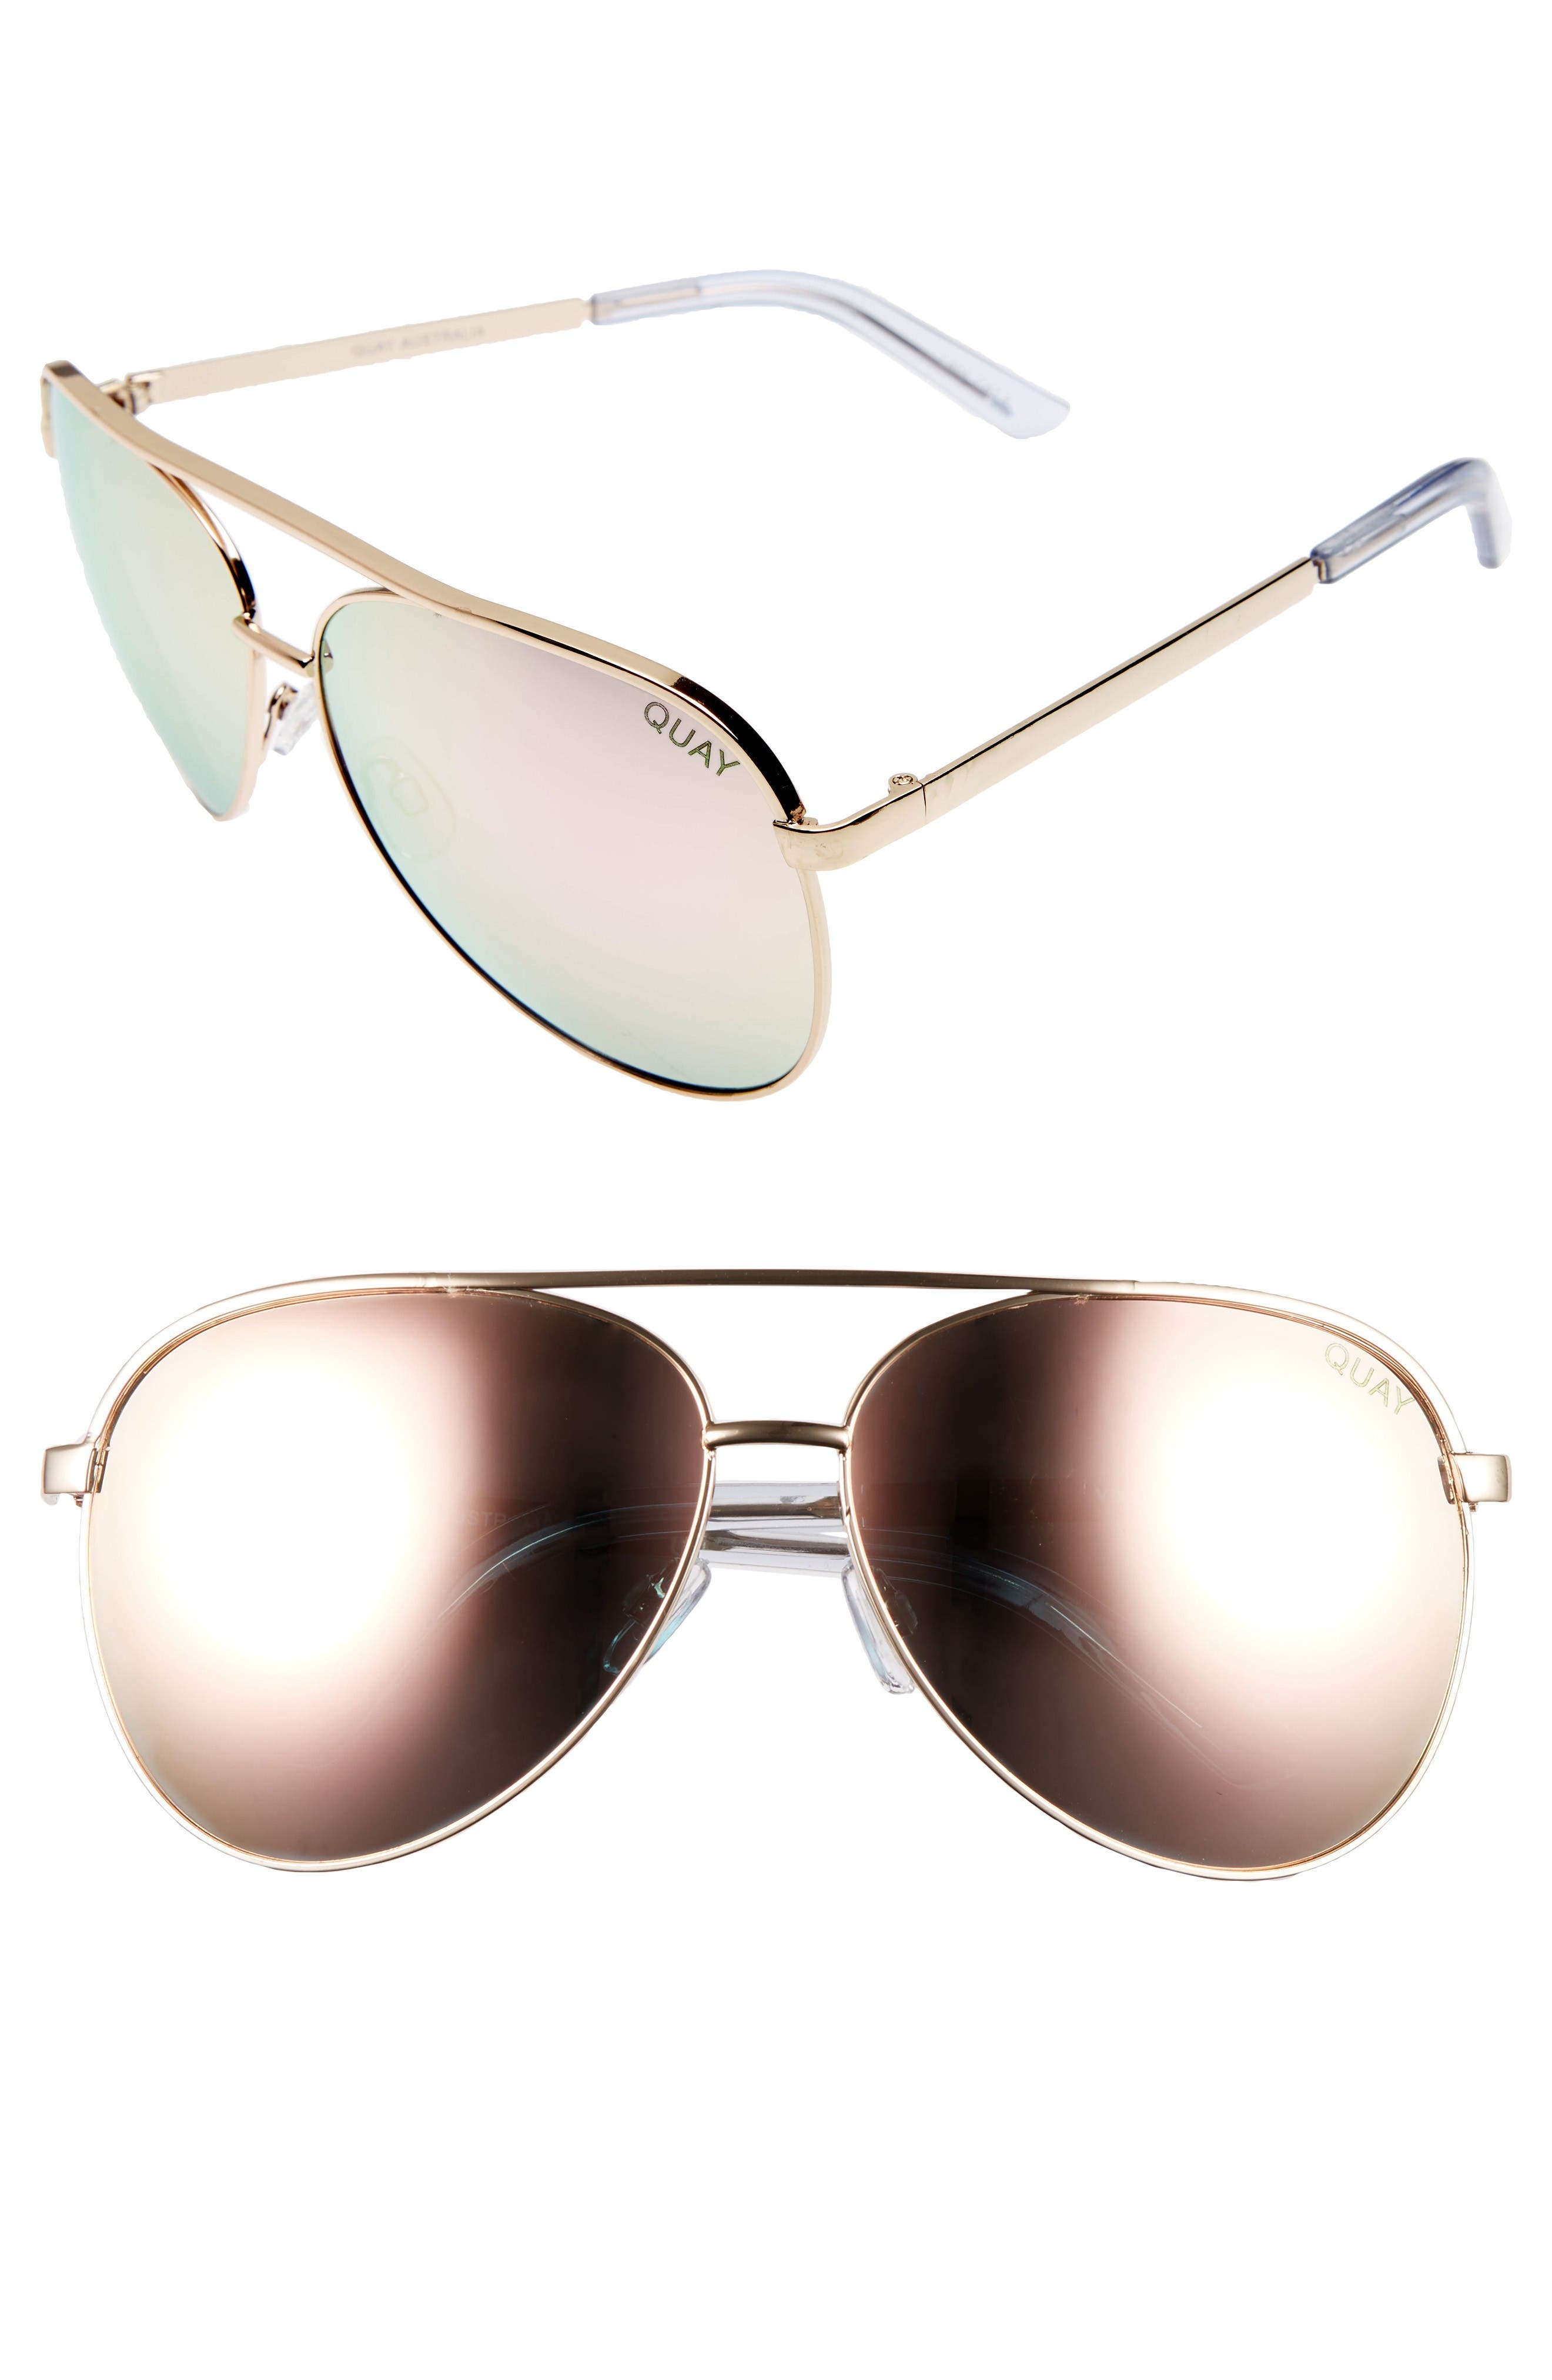 Vivienne 64mm Aviator Sunglasses,                         Main,                         color, Gold / Rose Mirror